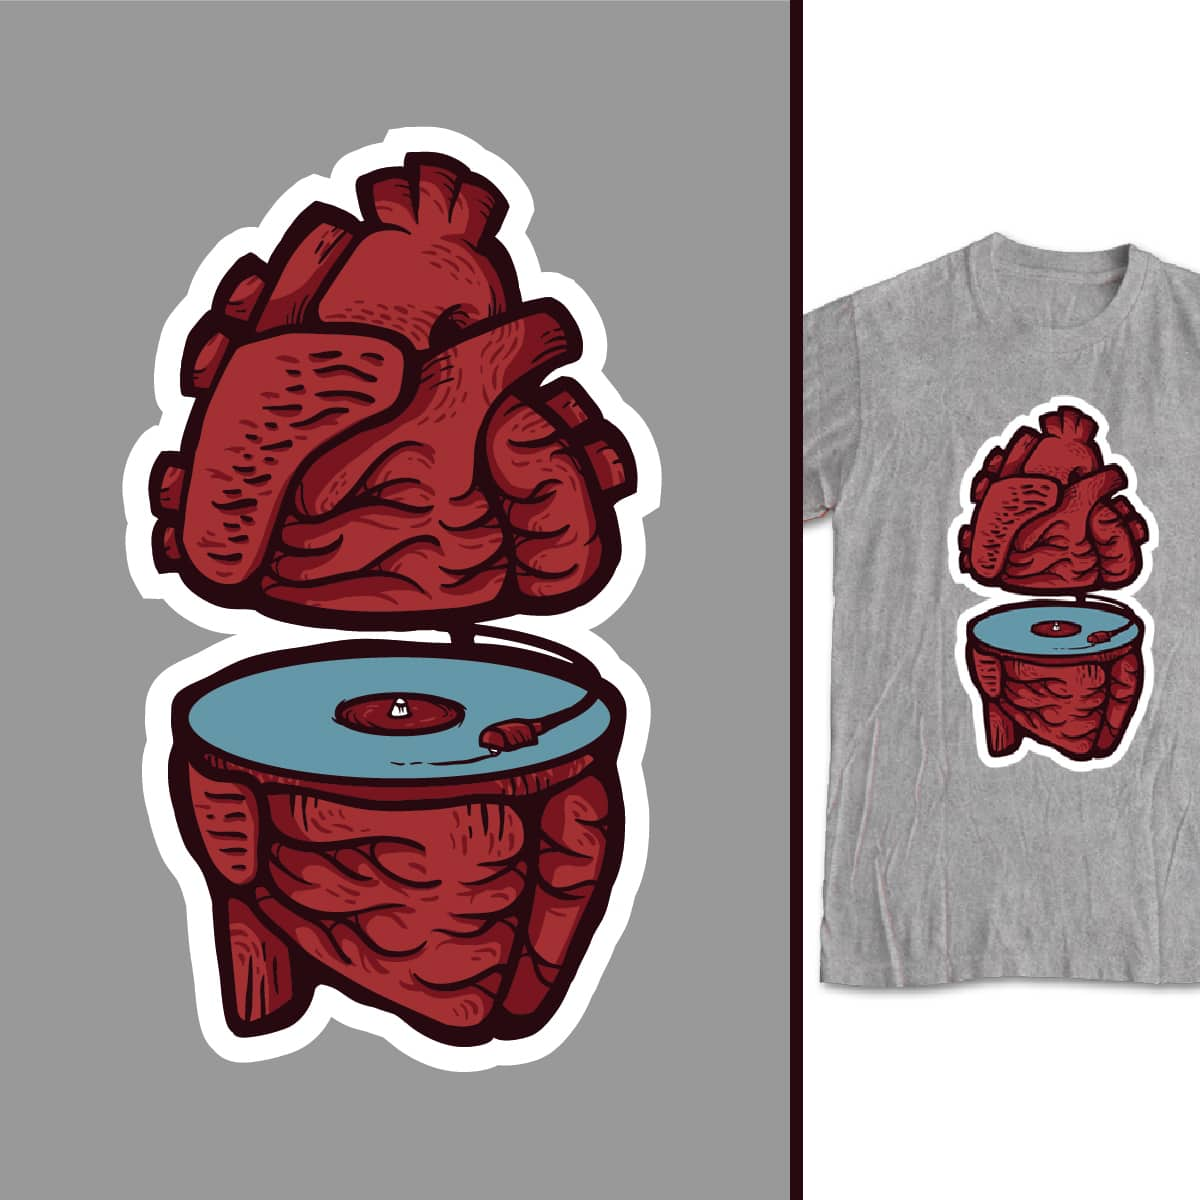 Runs in my veins by luccabloedow on Threadless